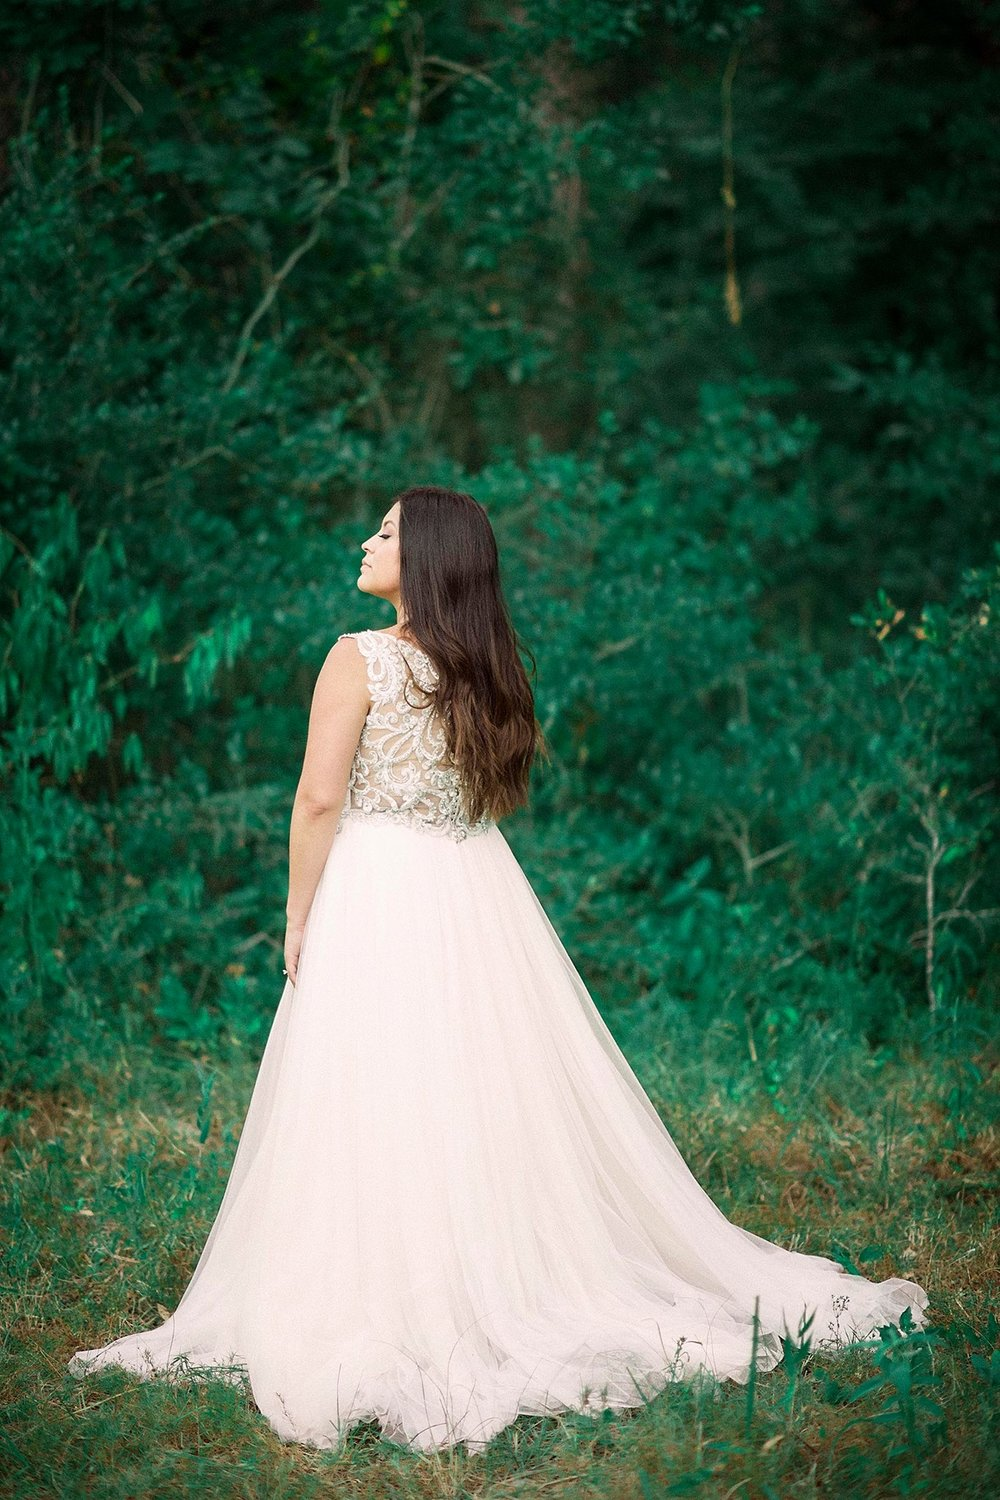 huntsville wedding photographer.jpg